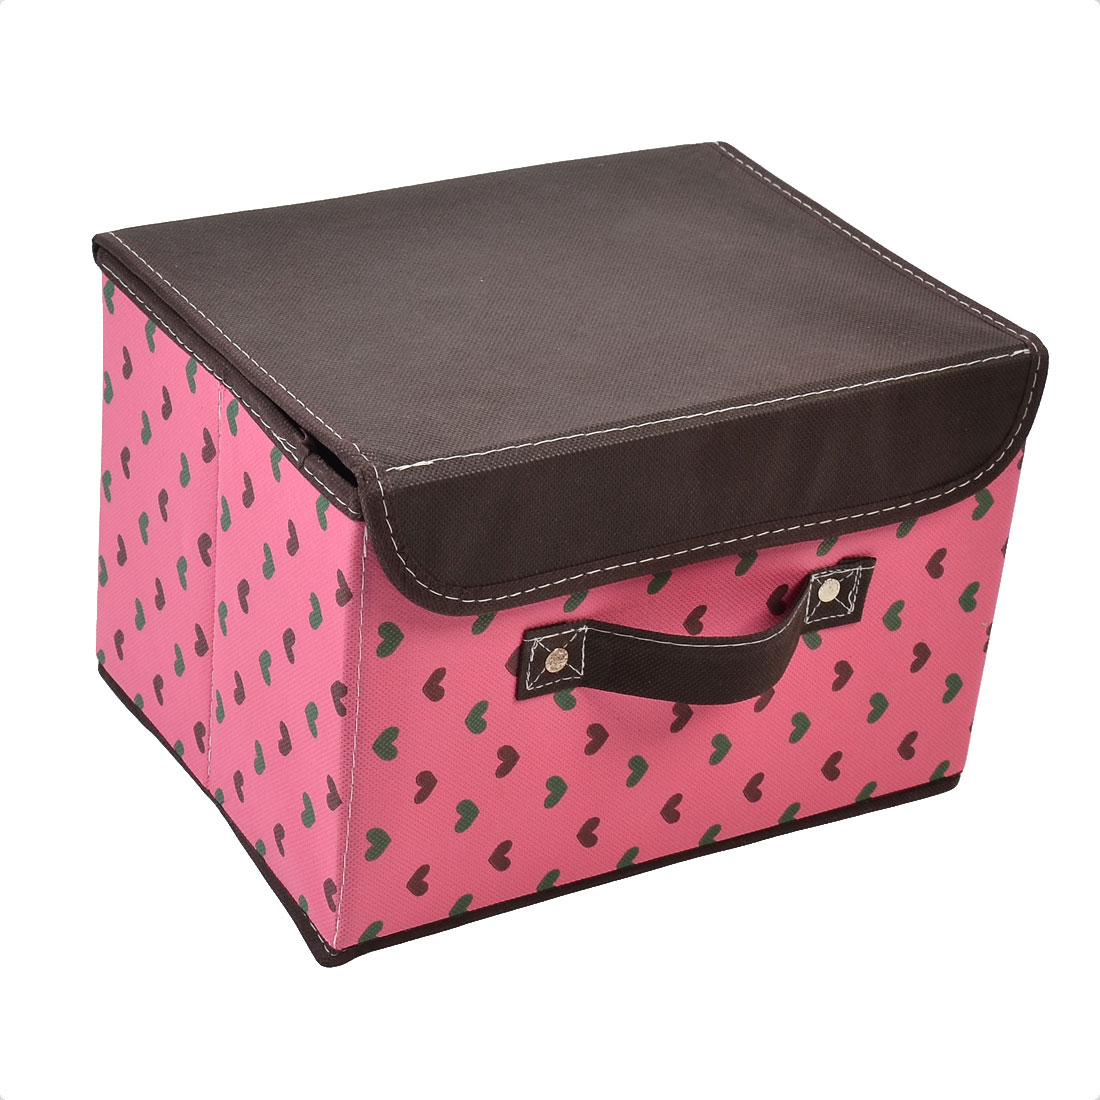 Non-woven Fabric Heart Pattern Cosmetic Makeup Storage Box Holder Brown Fuchsia